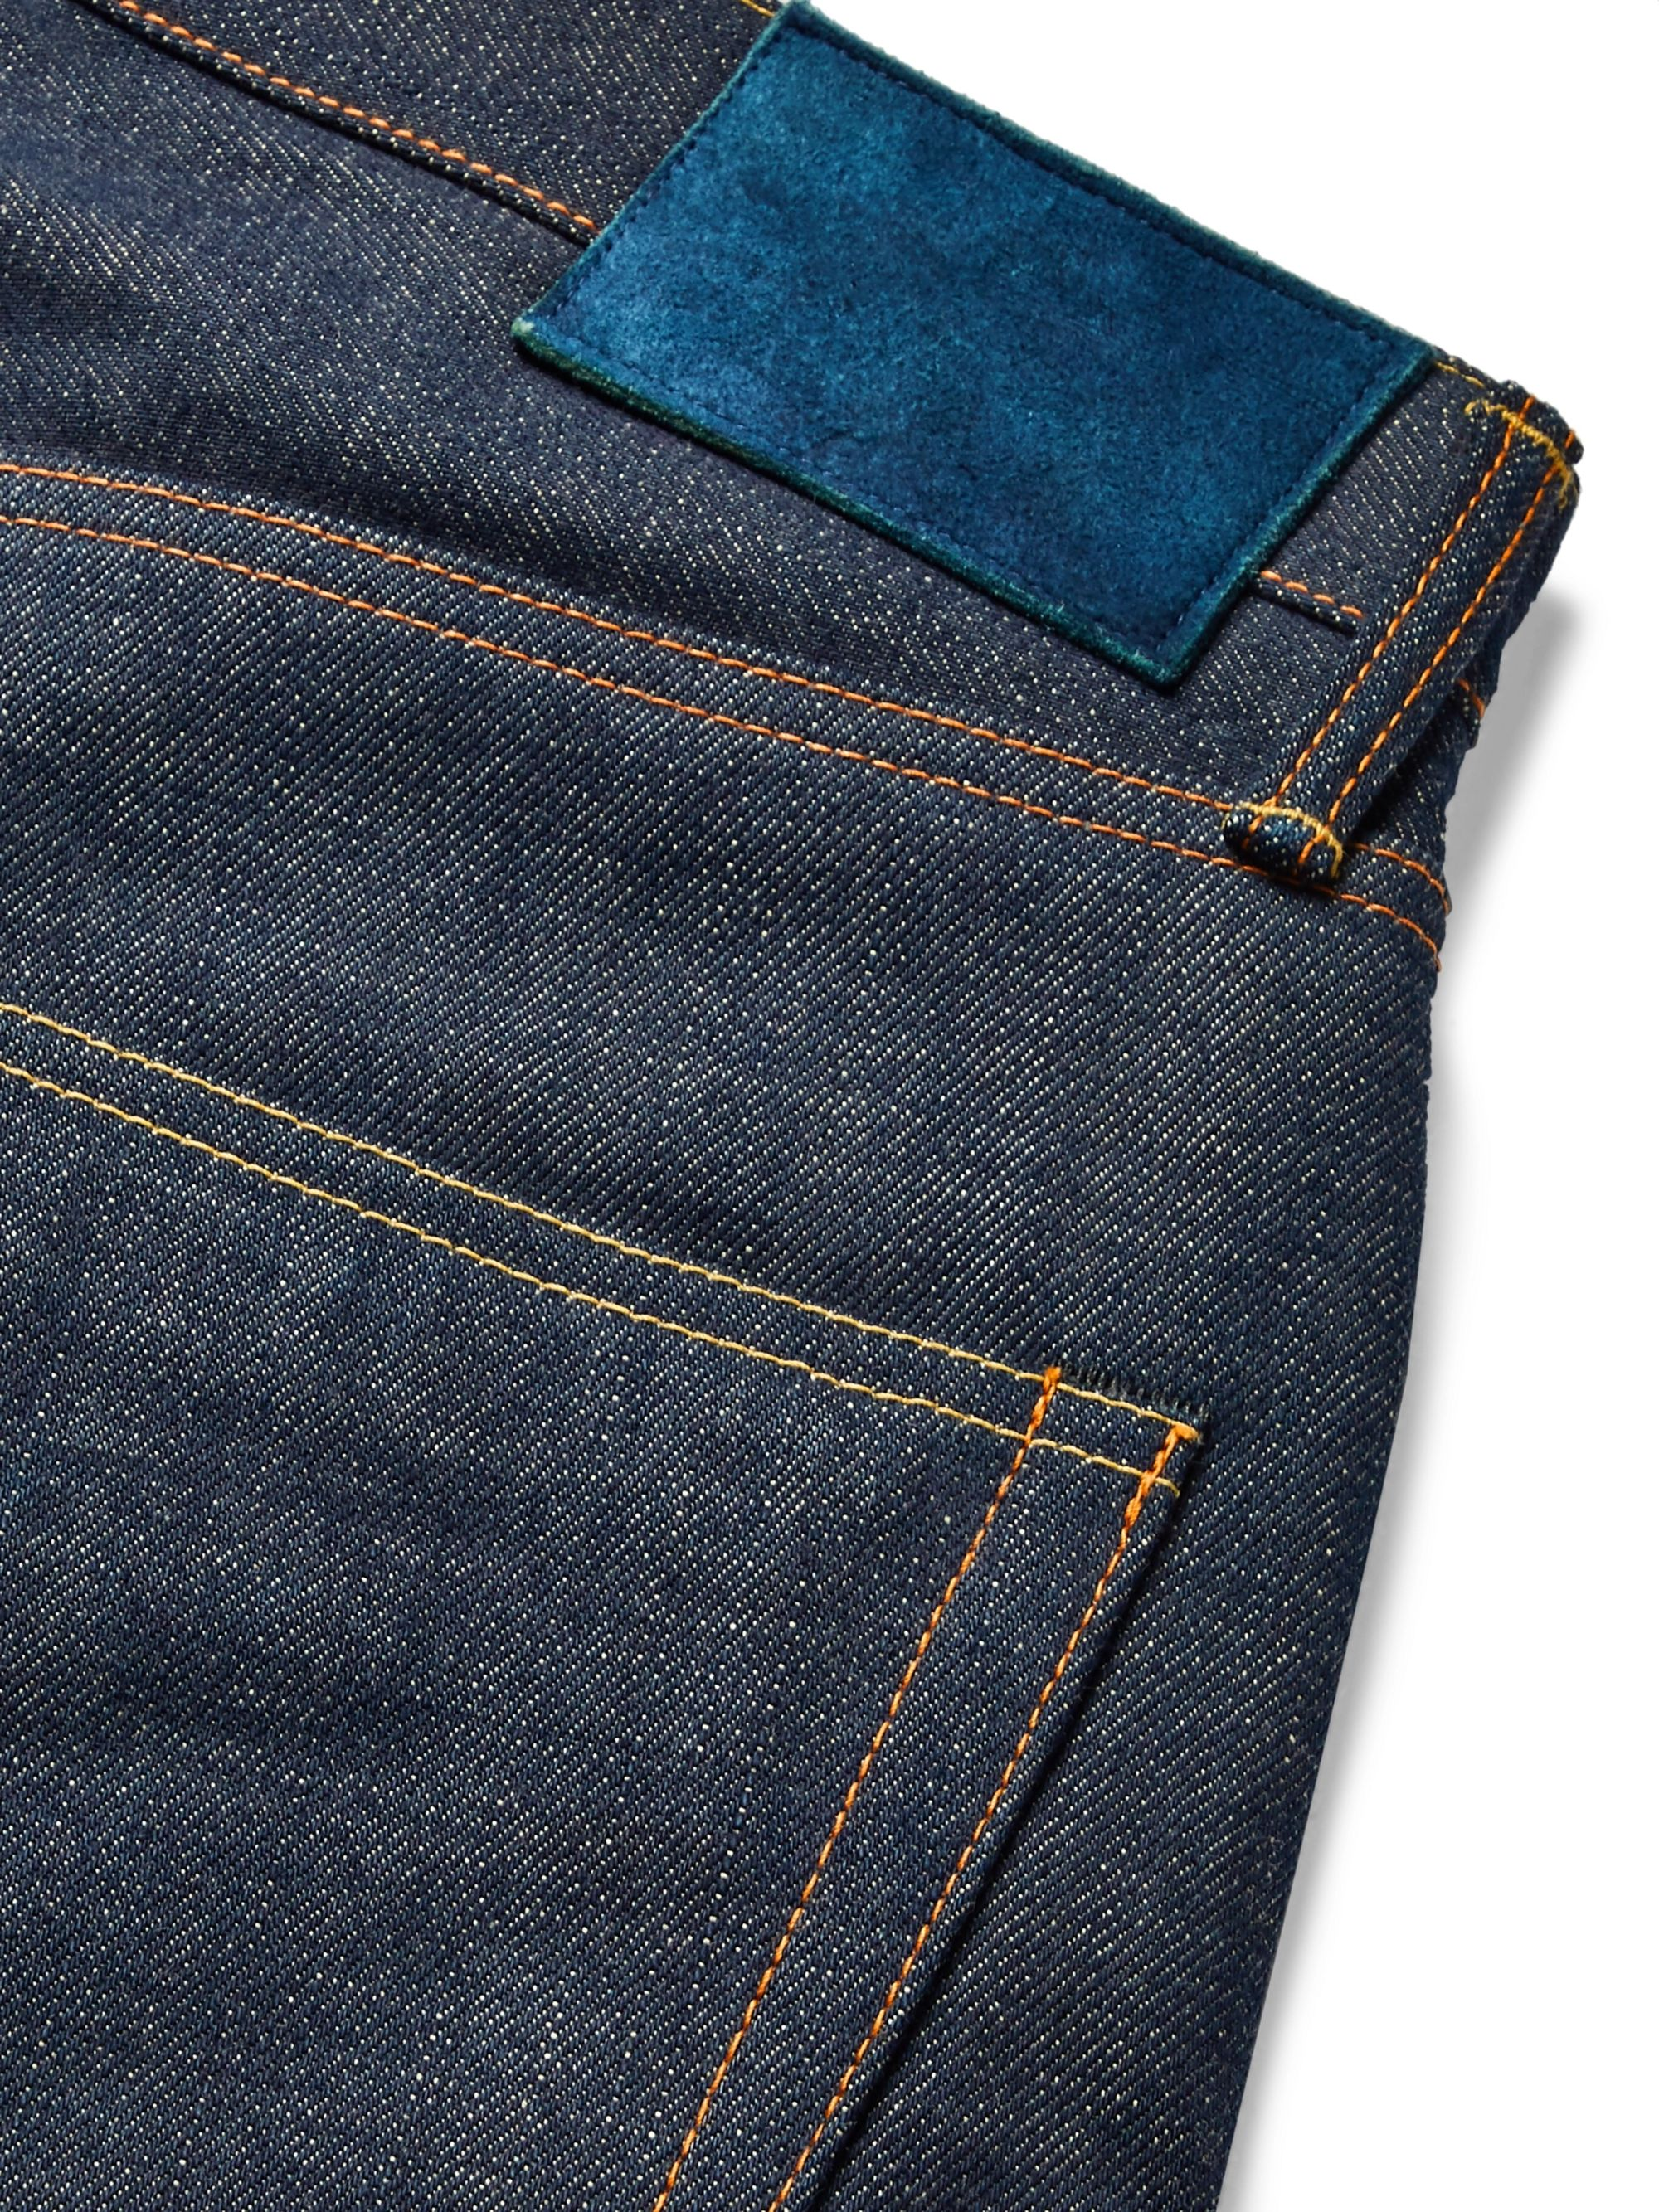 visvim Social Sculpture 01 Slim-Fit Raw Selvedge Denim Jeans